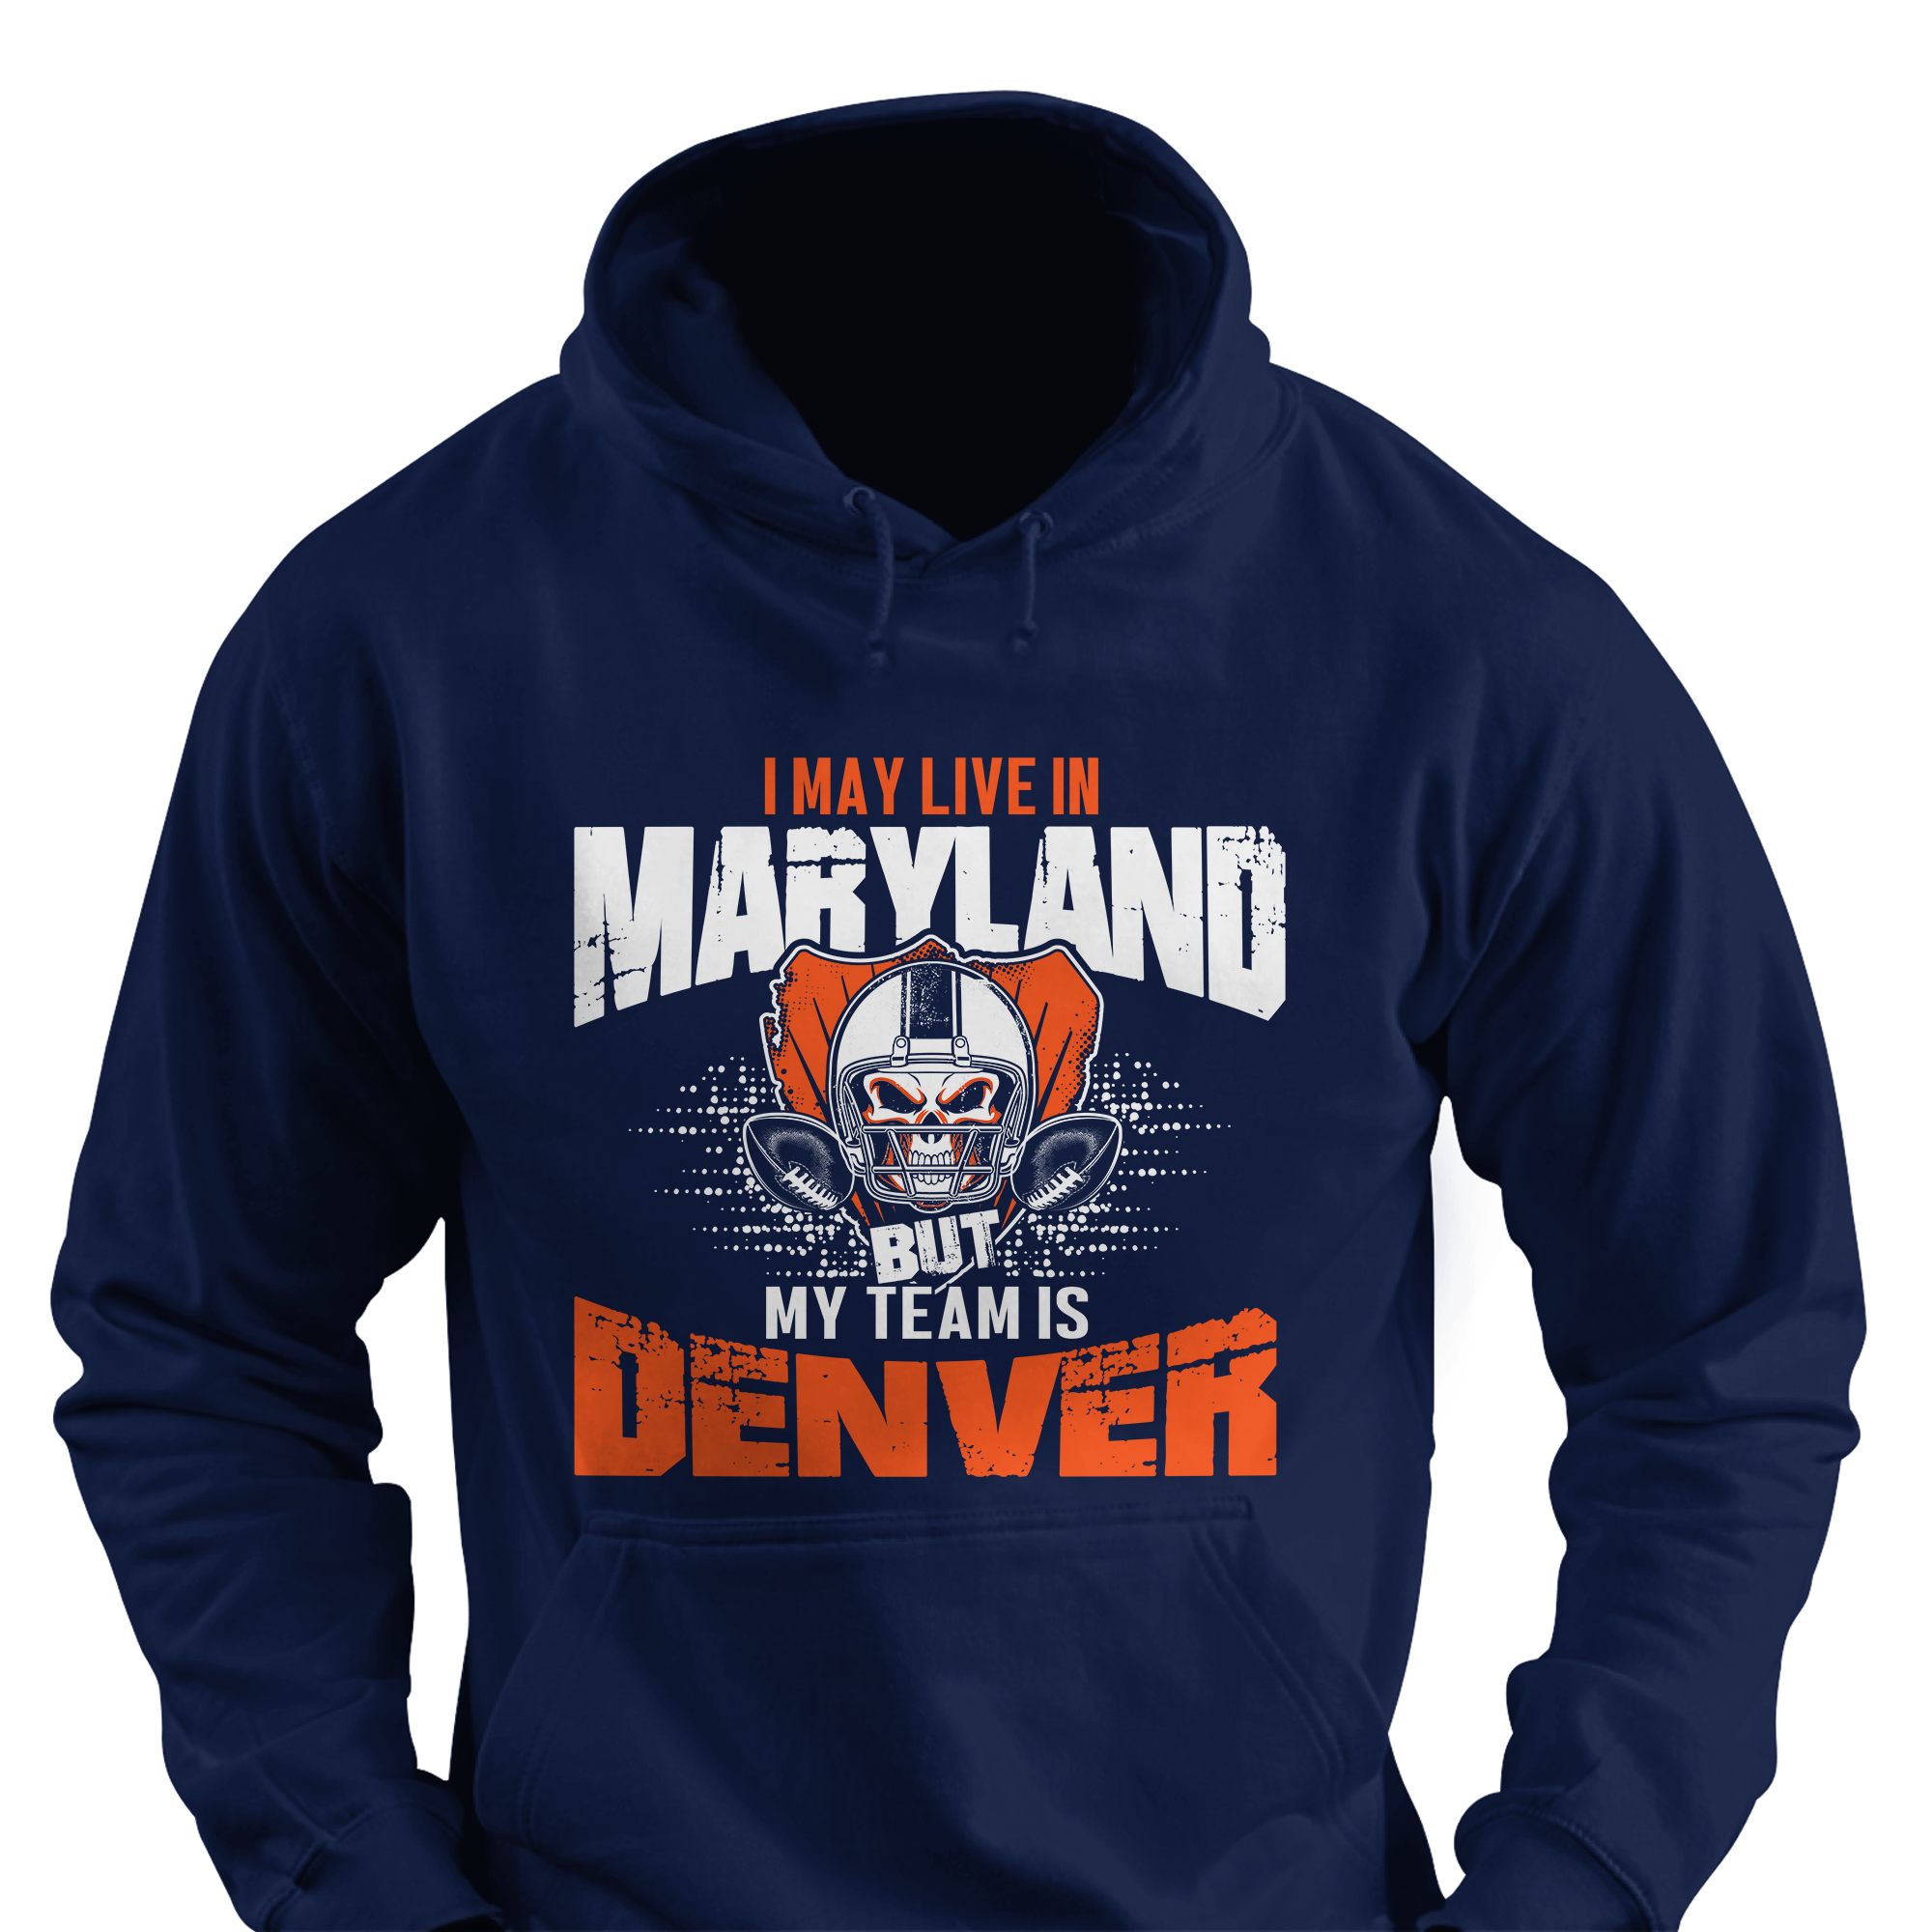 I May Live in Maryland but My Team is Denver